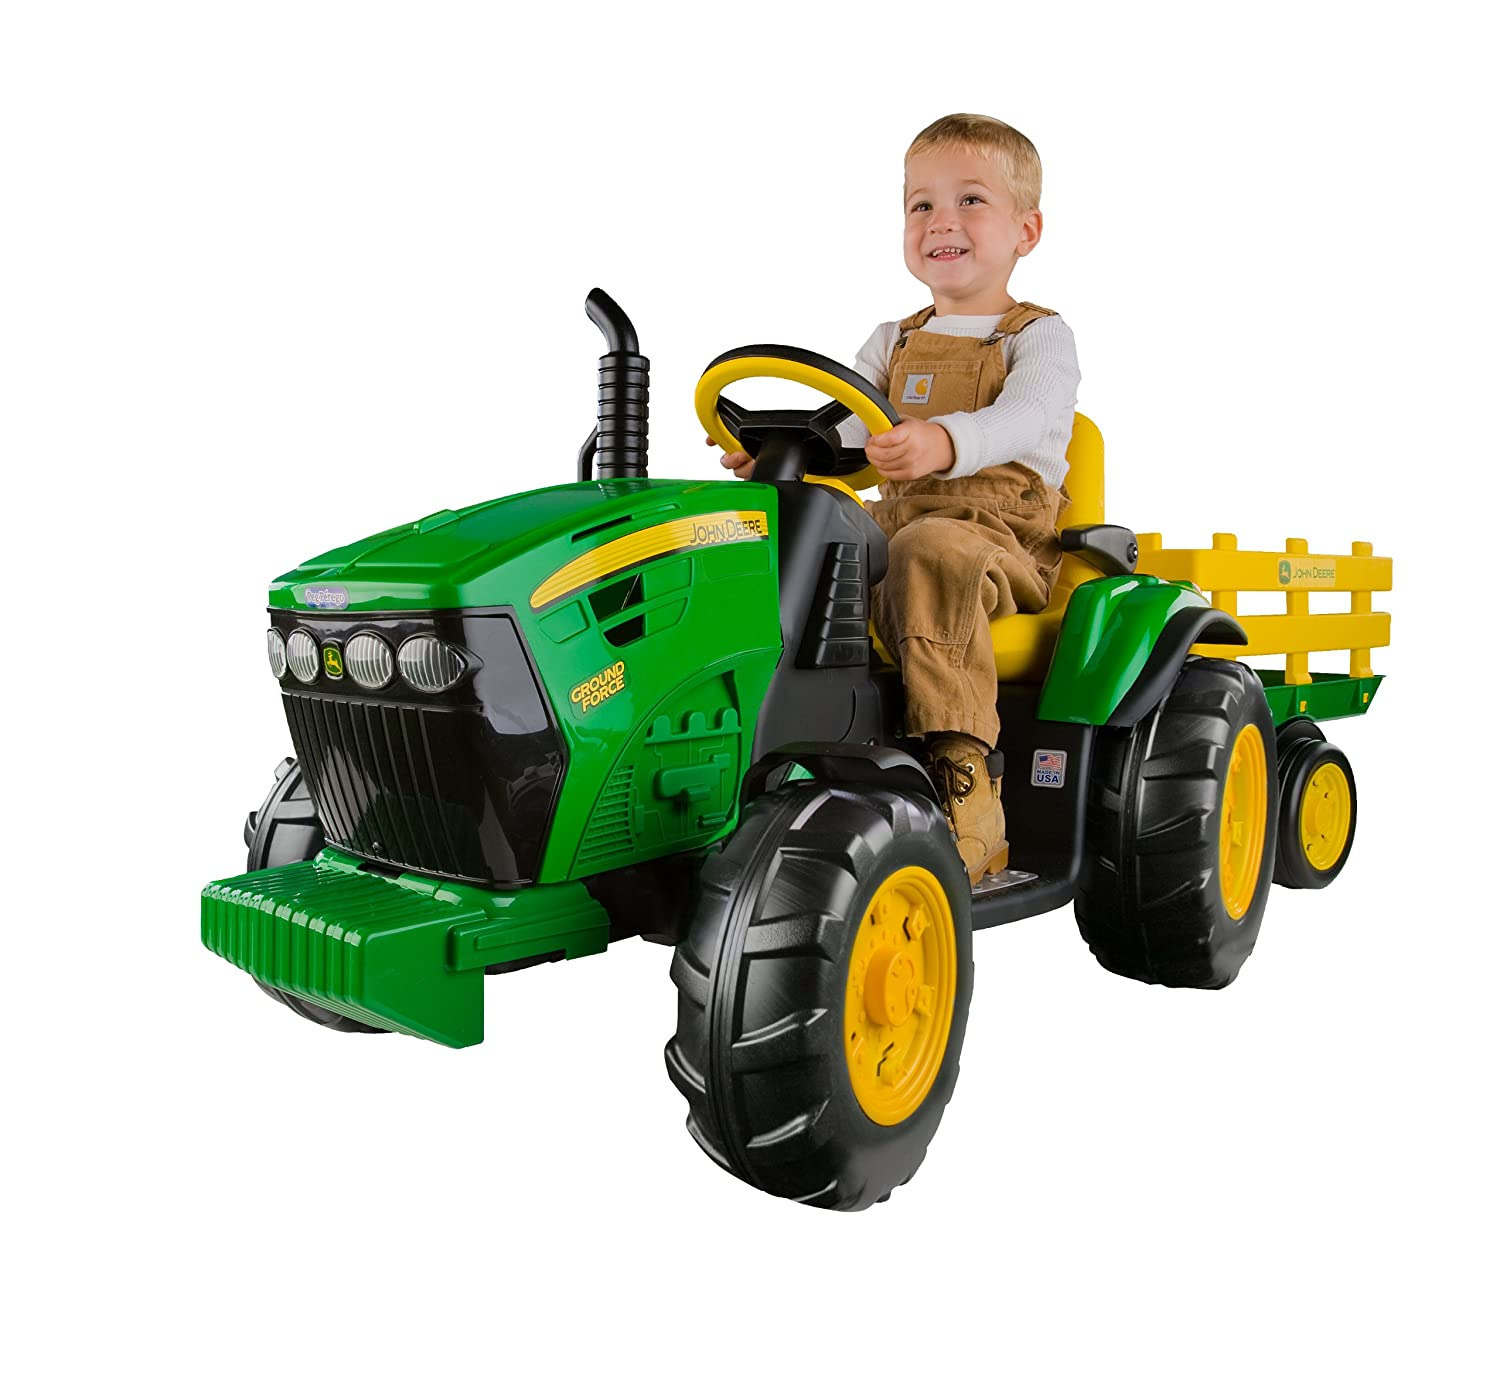 Peg Perego Ground Force Tractor with Trailer